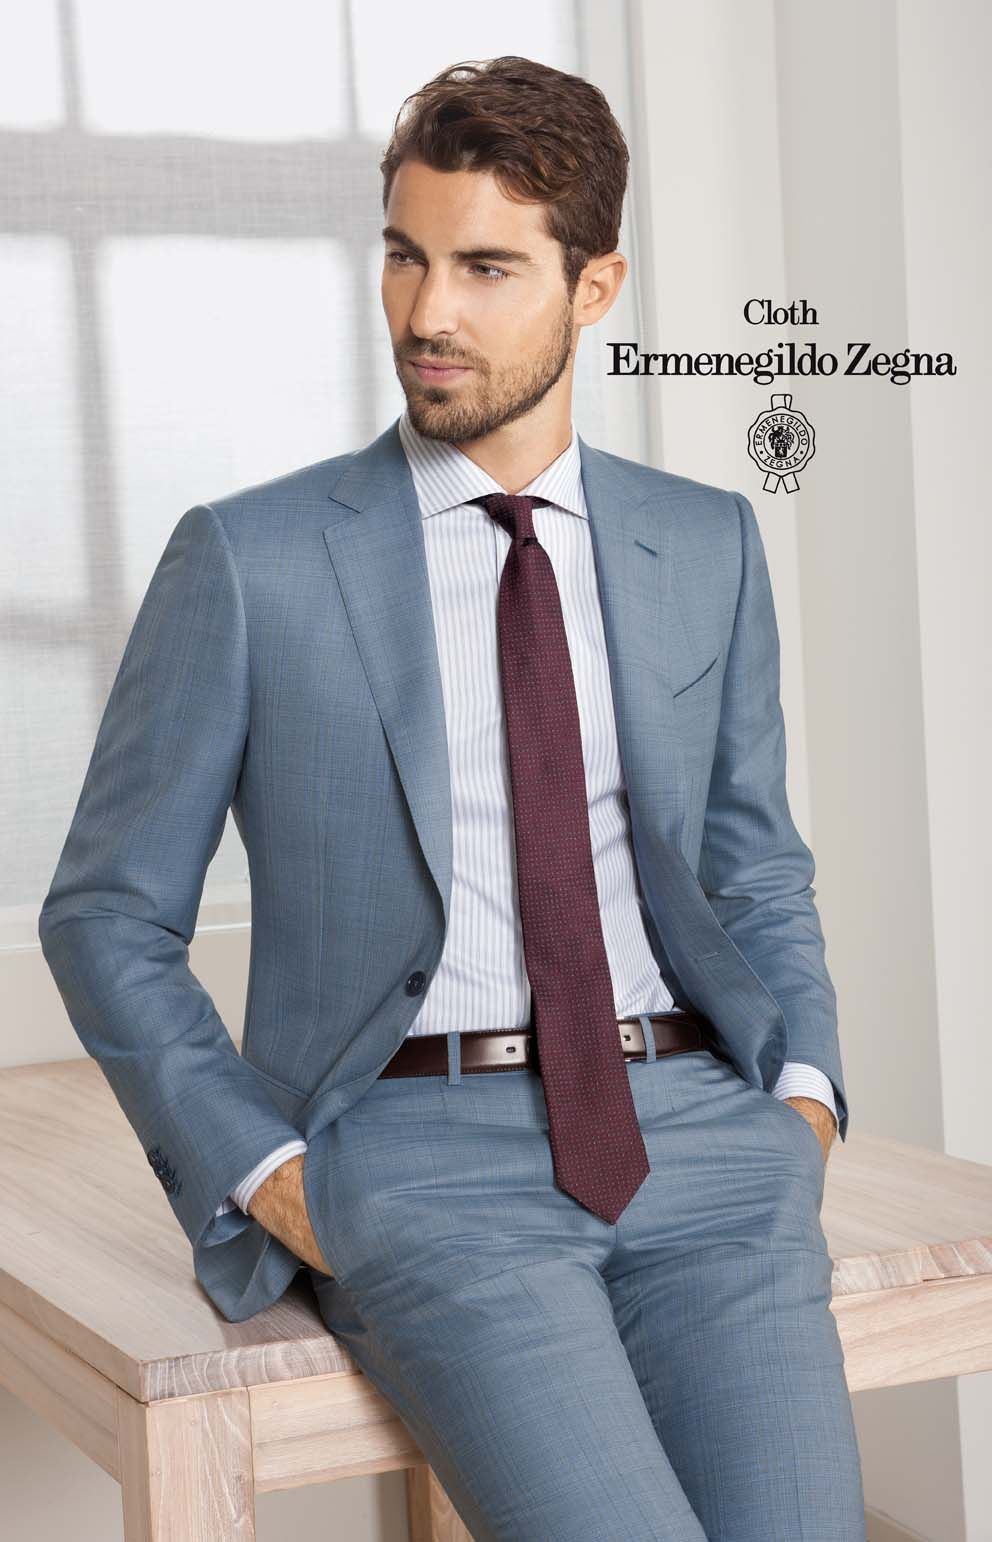 Abiti Eleganti Zegna.Collections Tailor Made With Cloth Ermenegildo Zegna